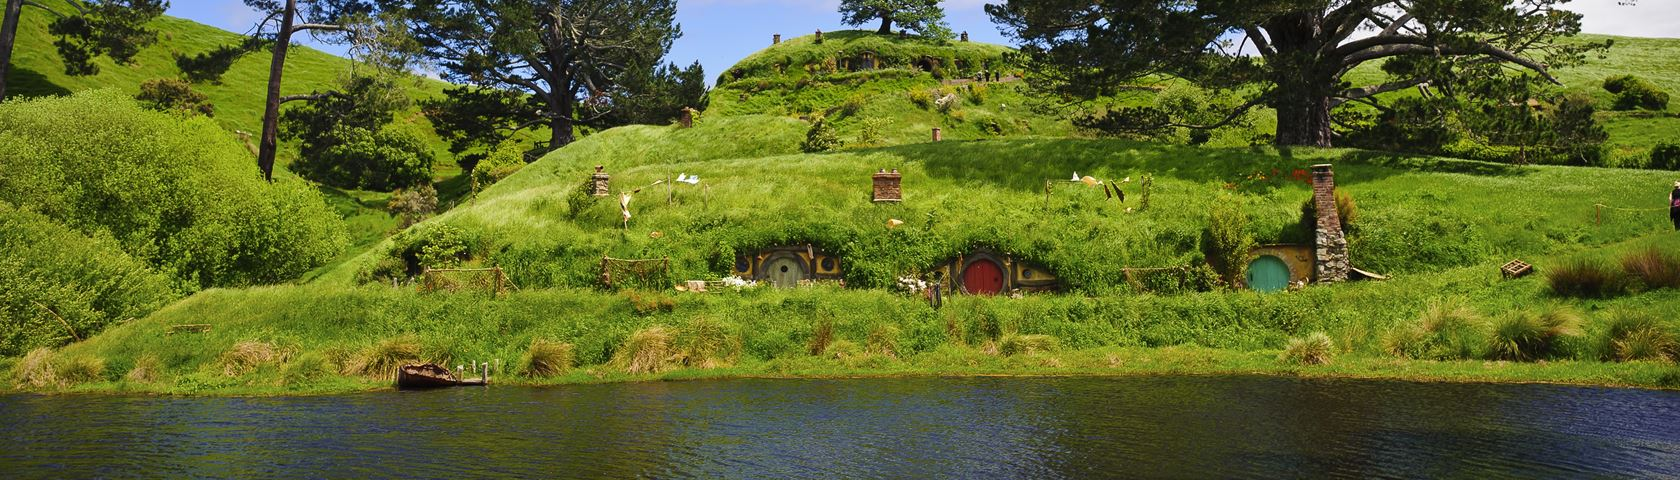 the shire, middle earth • images • wallpaperfusionbinary